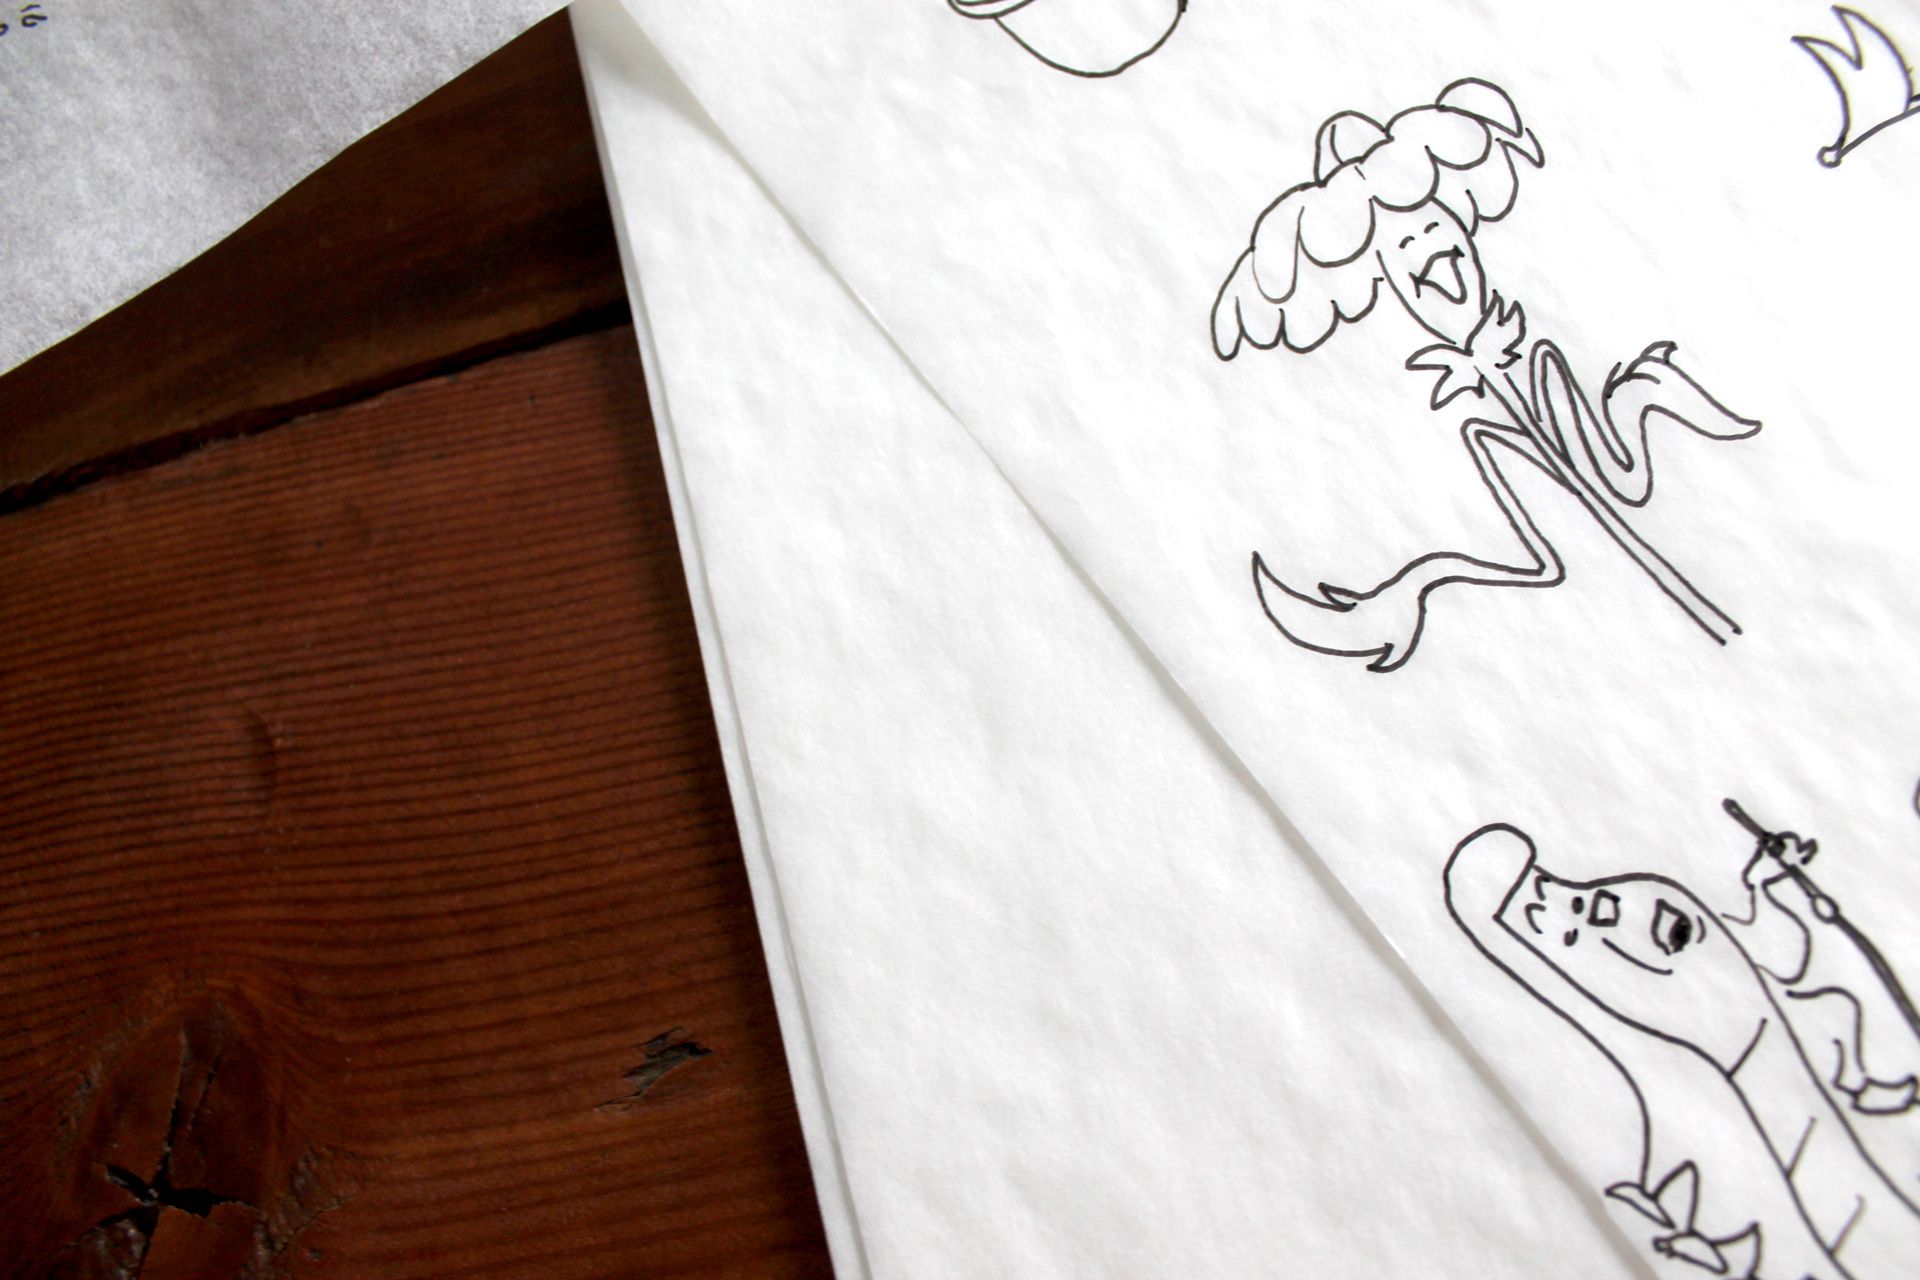 Close up of illustrations on tracing paper sitting on a wooden table